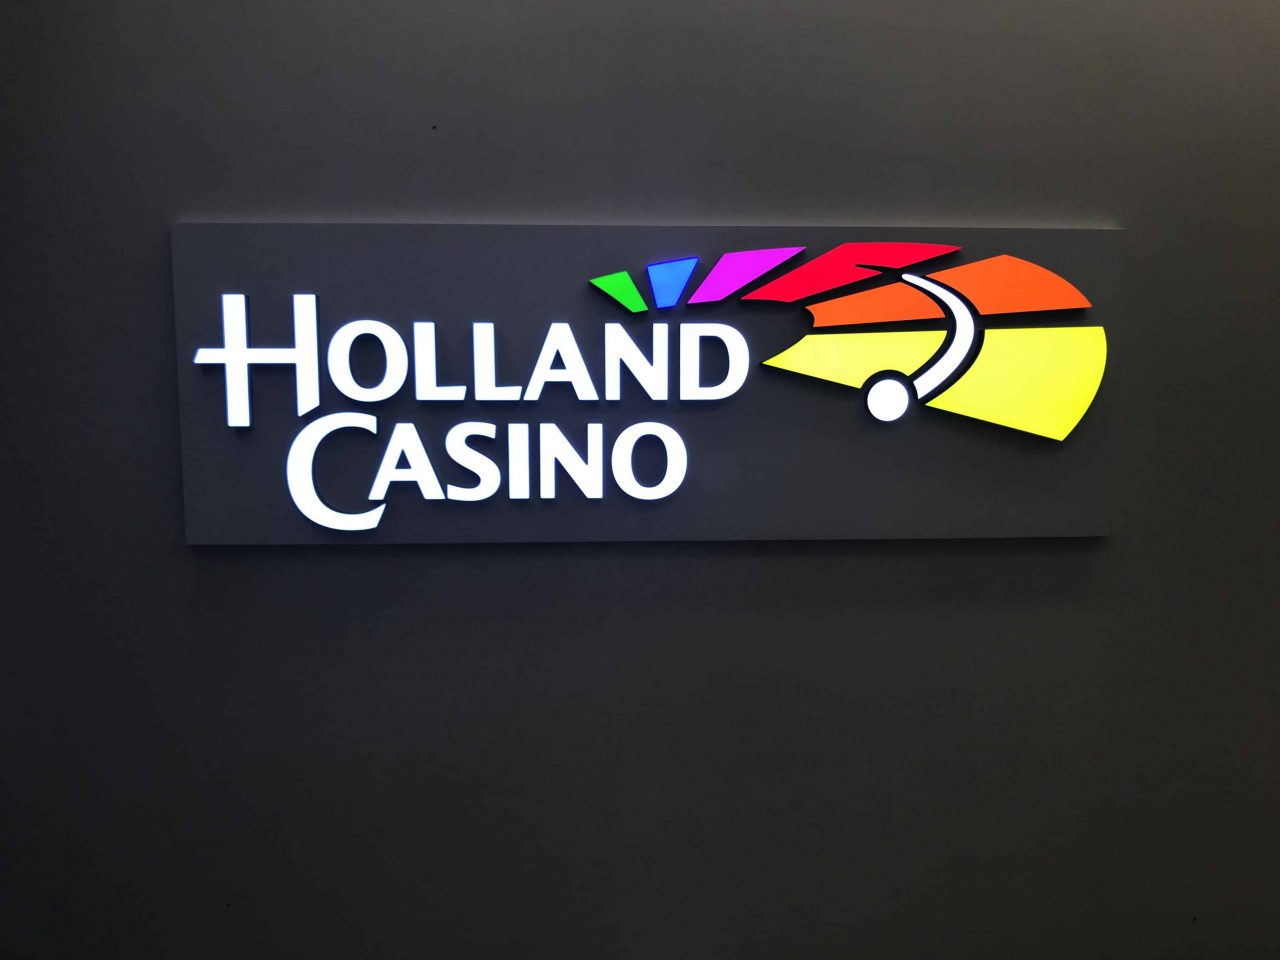 Holland-Casino-logo-e1558965996560